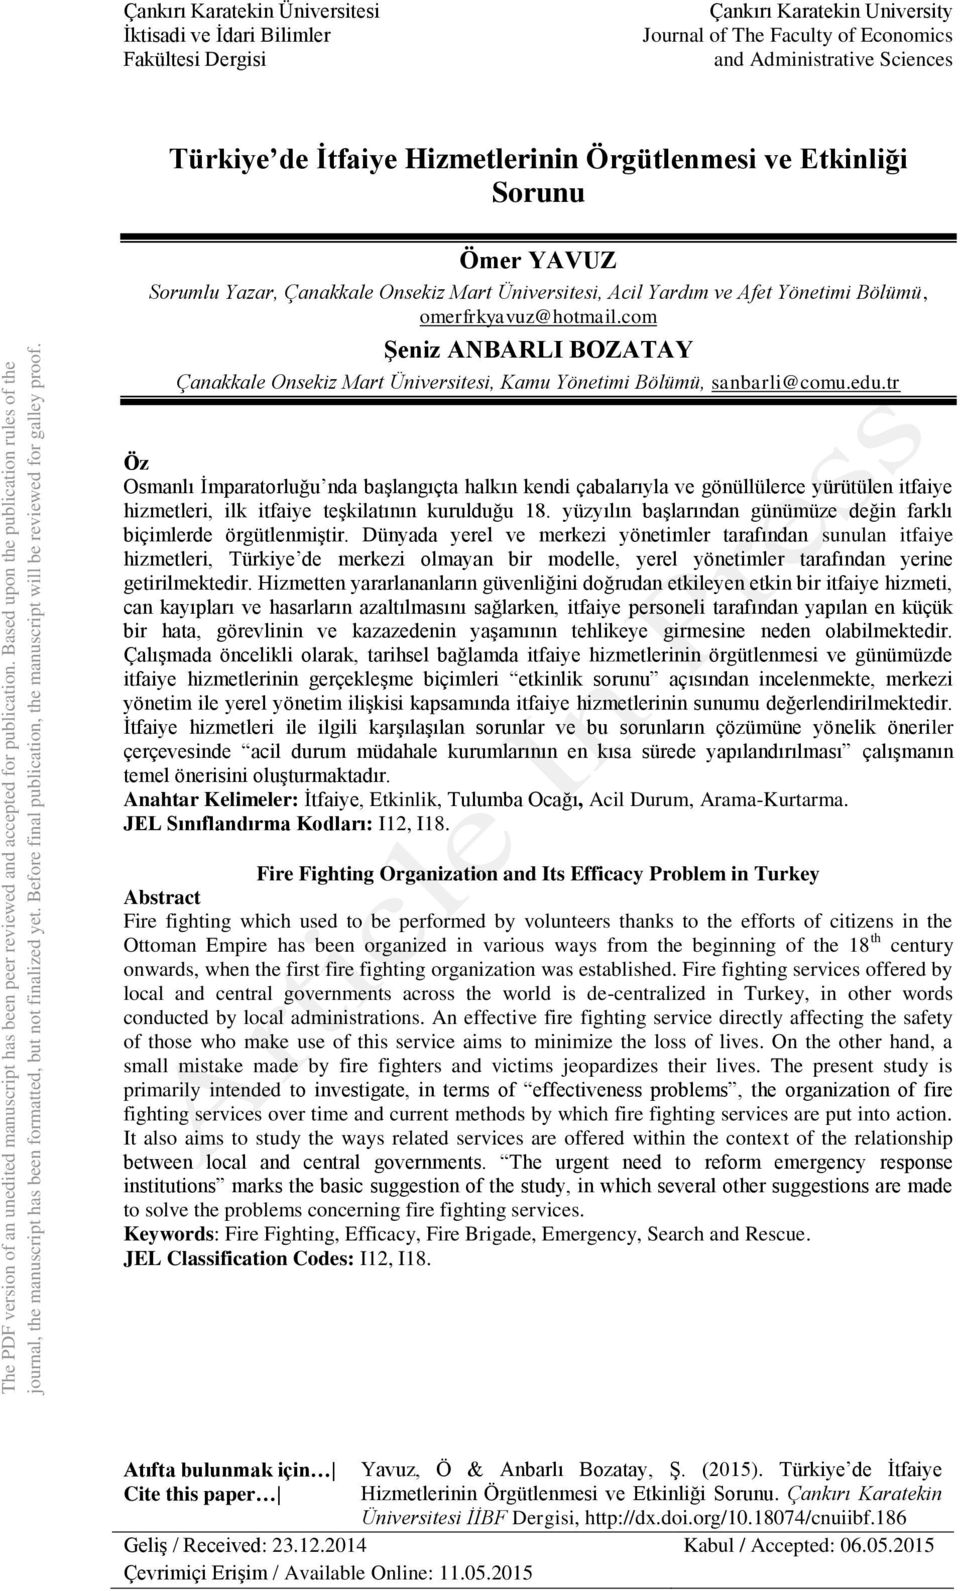 Çankırı Karatekin Üniversitesi İktisadi ve İdari Bilimler Fakültesi Dergisi Çankırı Karatekin University Journal of The Faculty of Economics and Administrative Sciences Türkiye de İtfaiye